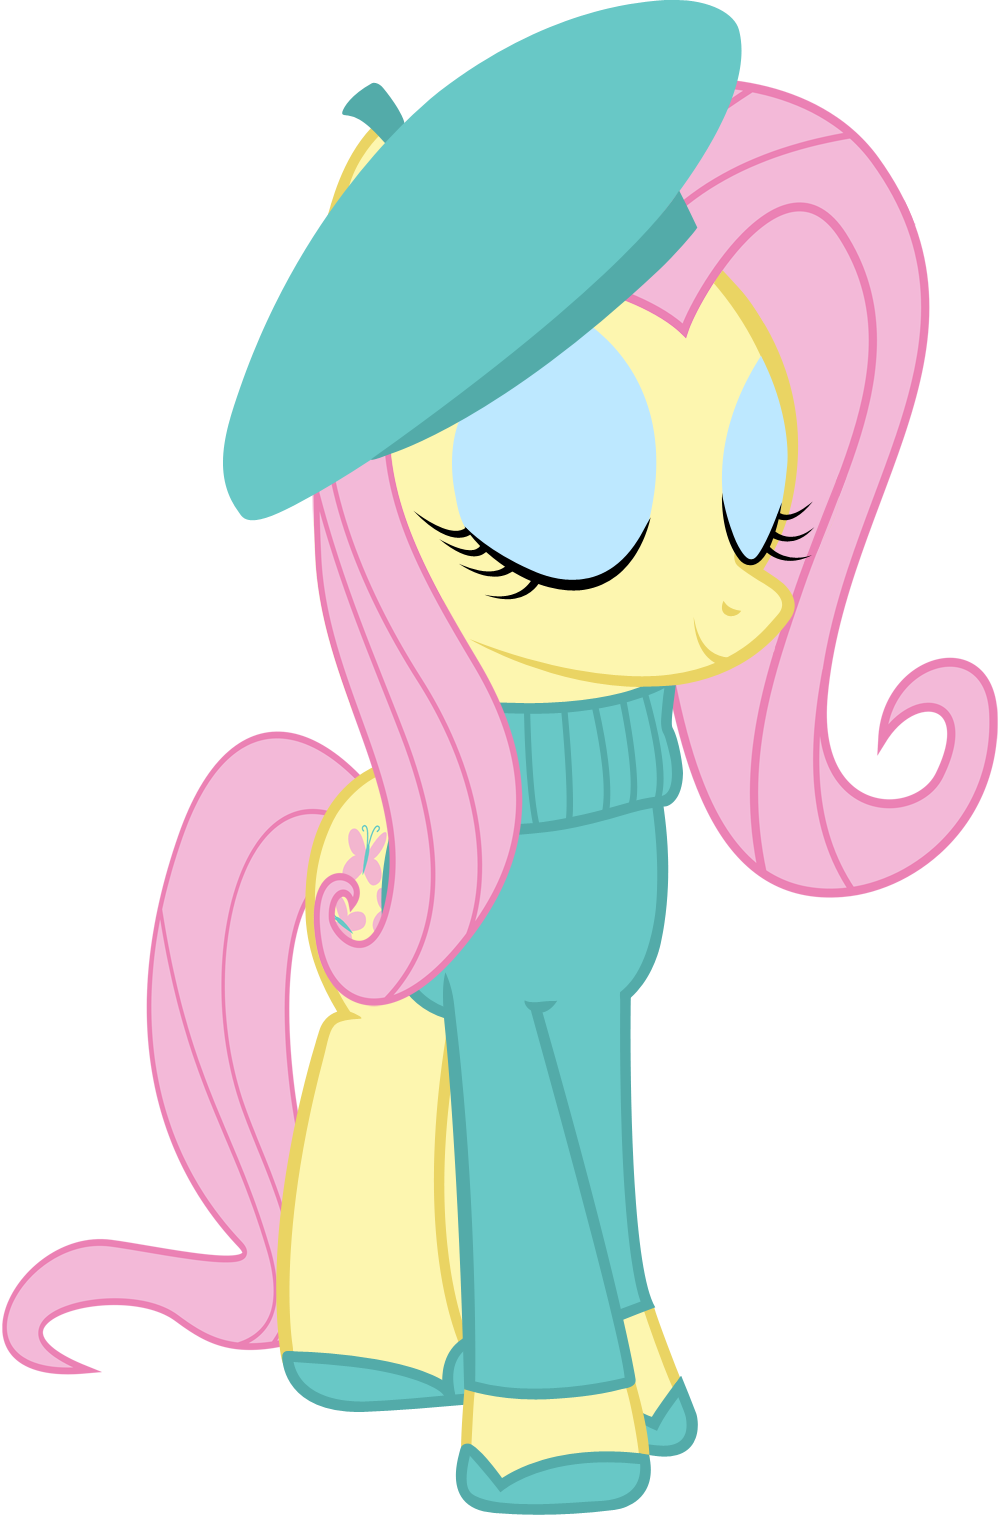 Mlp angel mud png. Fluttershy cool french by